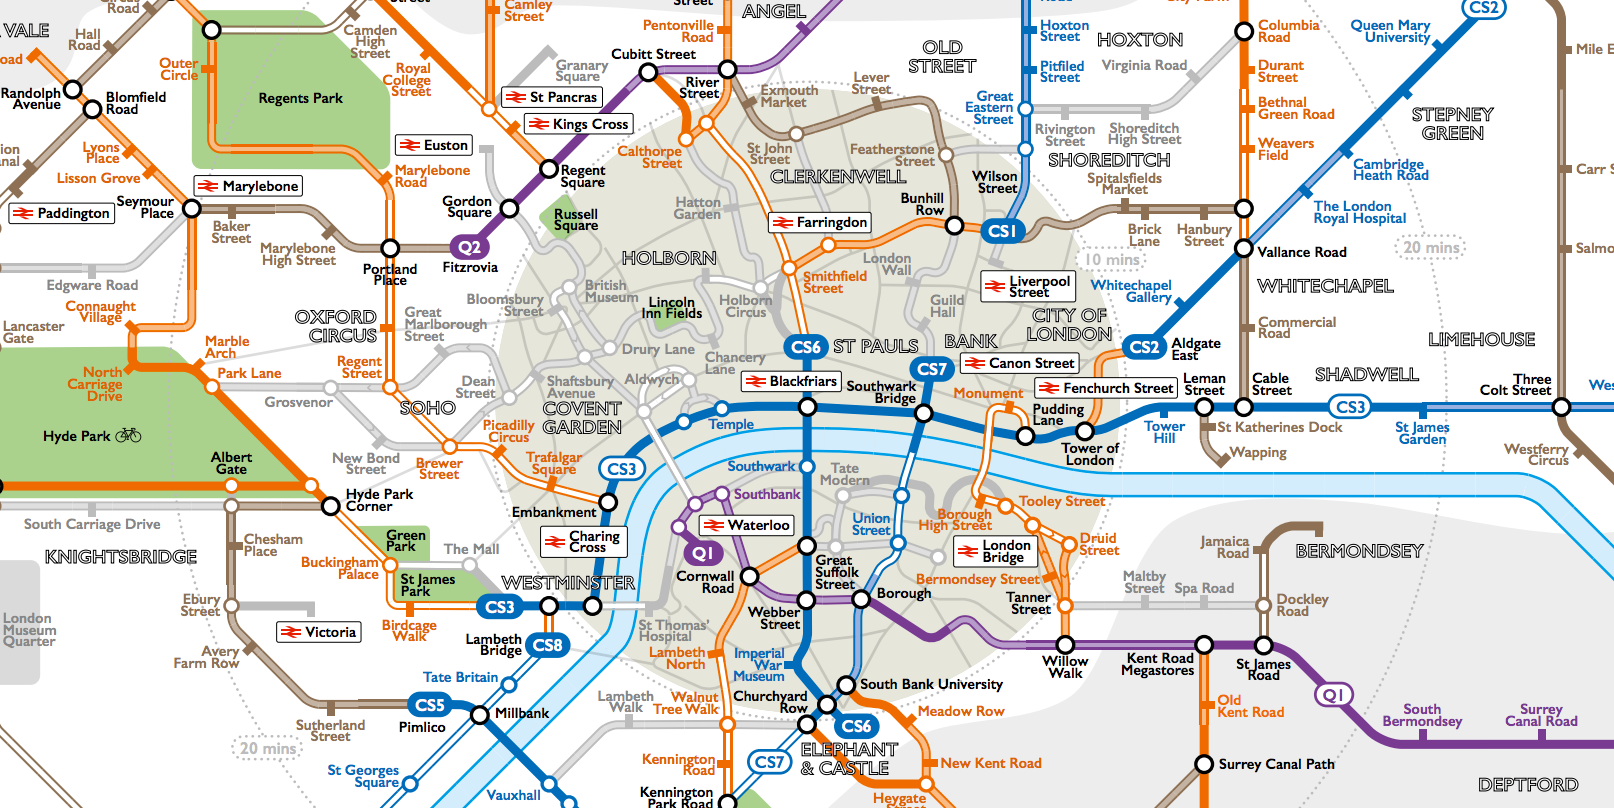 This Tube Style Map Reveals London s Intricate Cycle Path Network